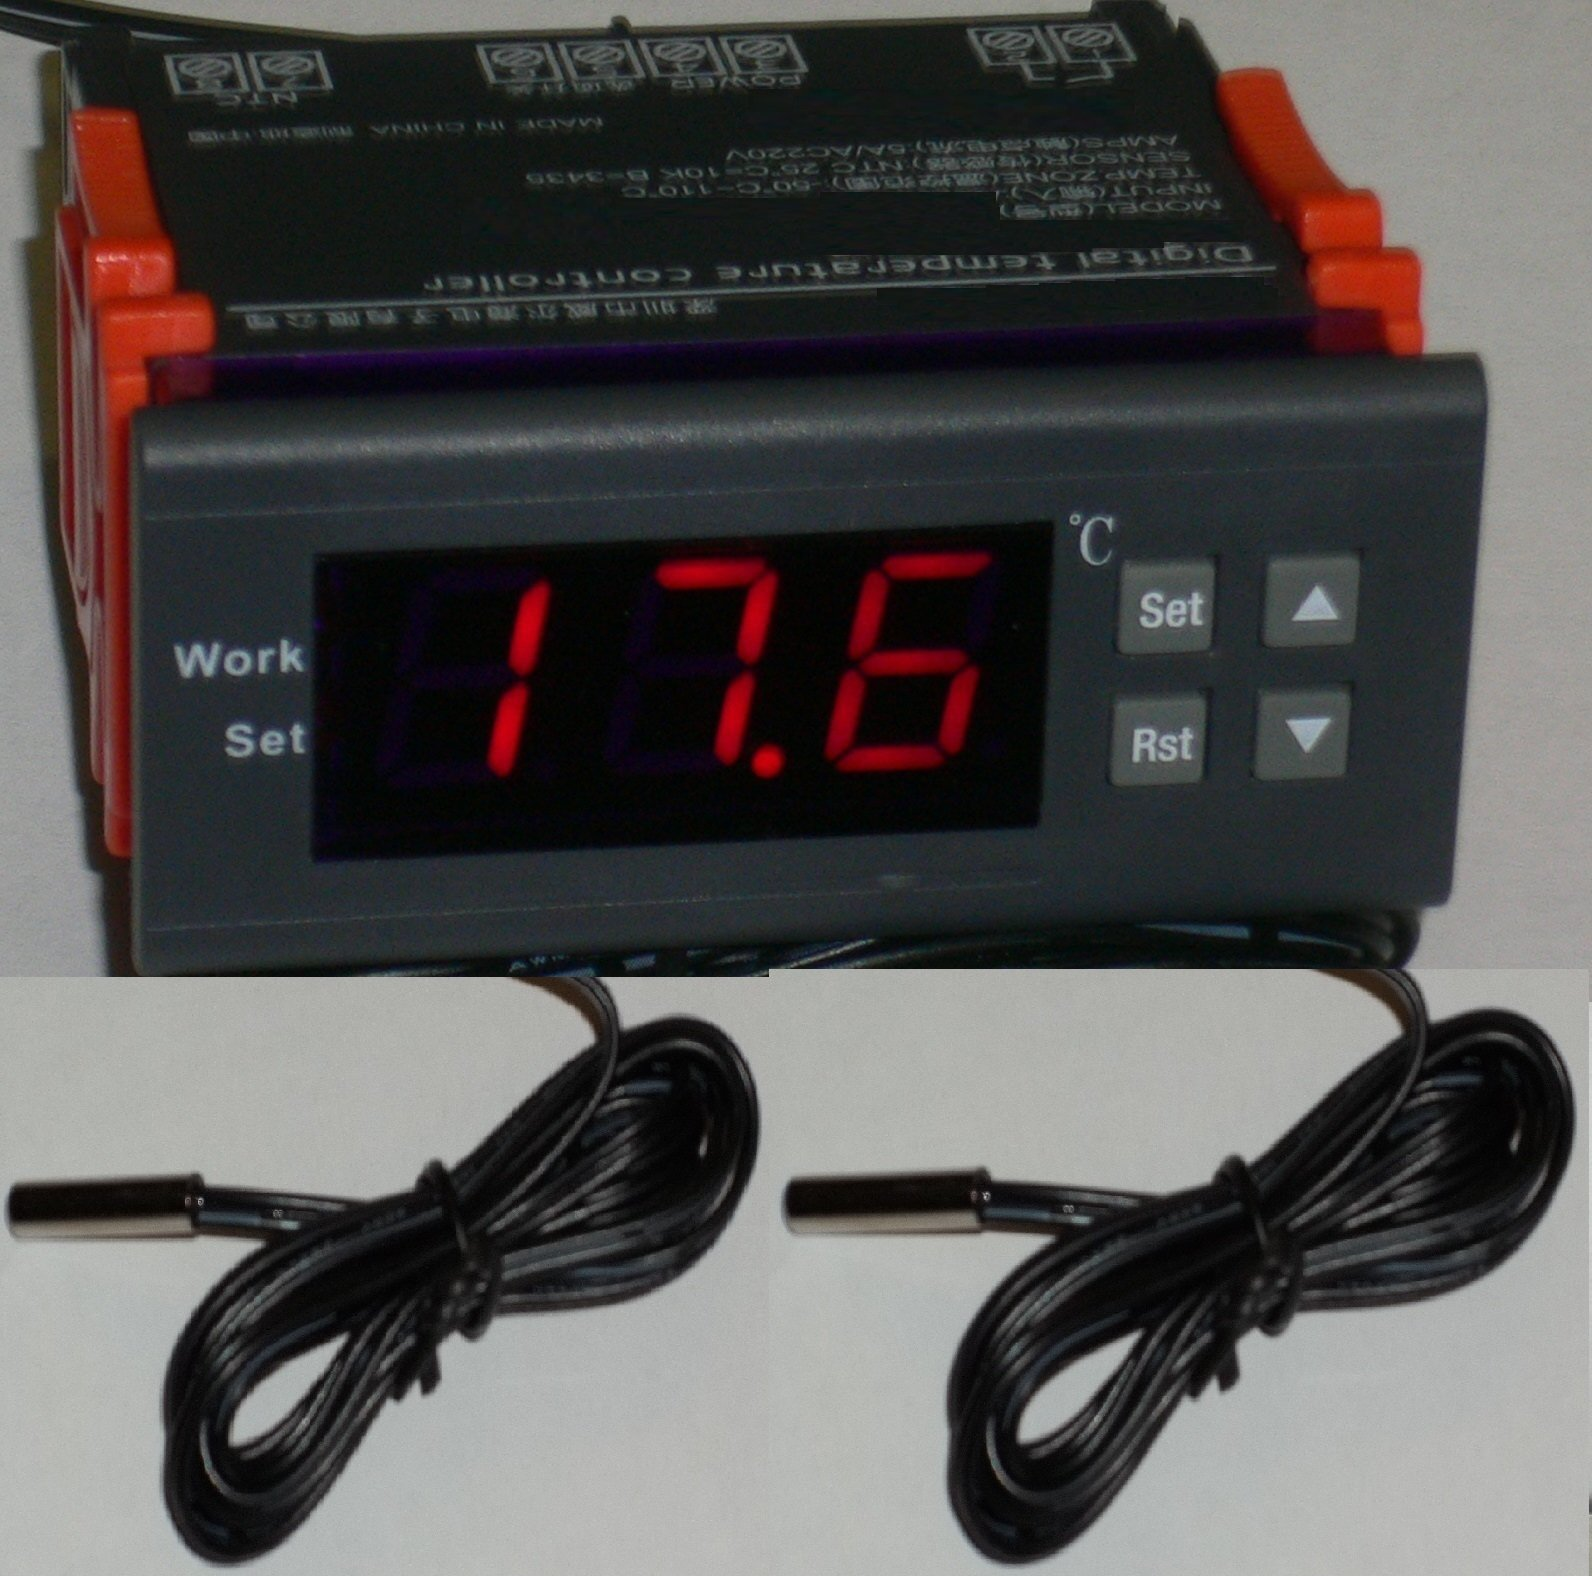 12V Differential Temperature Controller T2-T1 Thermostat Water Heater, Pool Solar Panel Pump 2 Sensors Fahrenheit Celsius by Thermomart